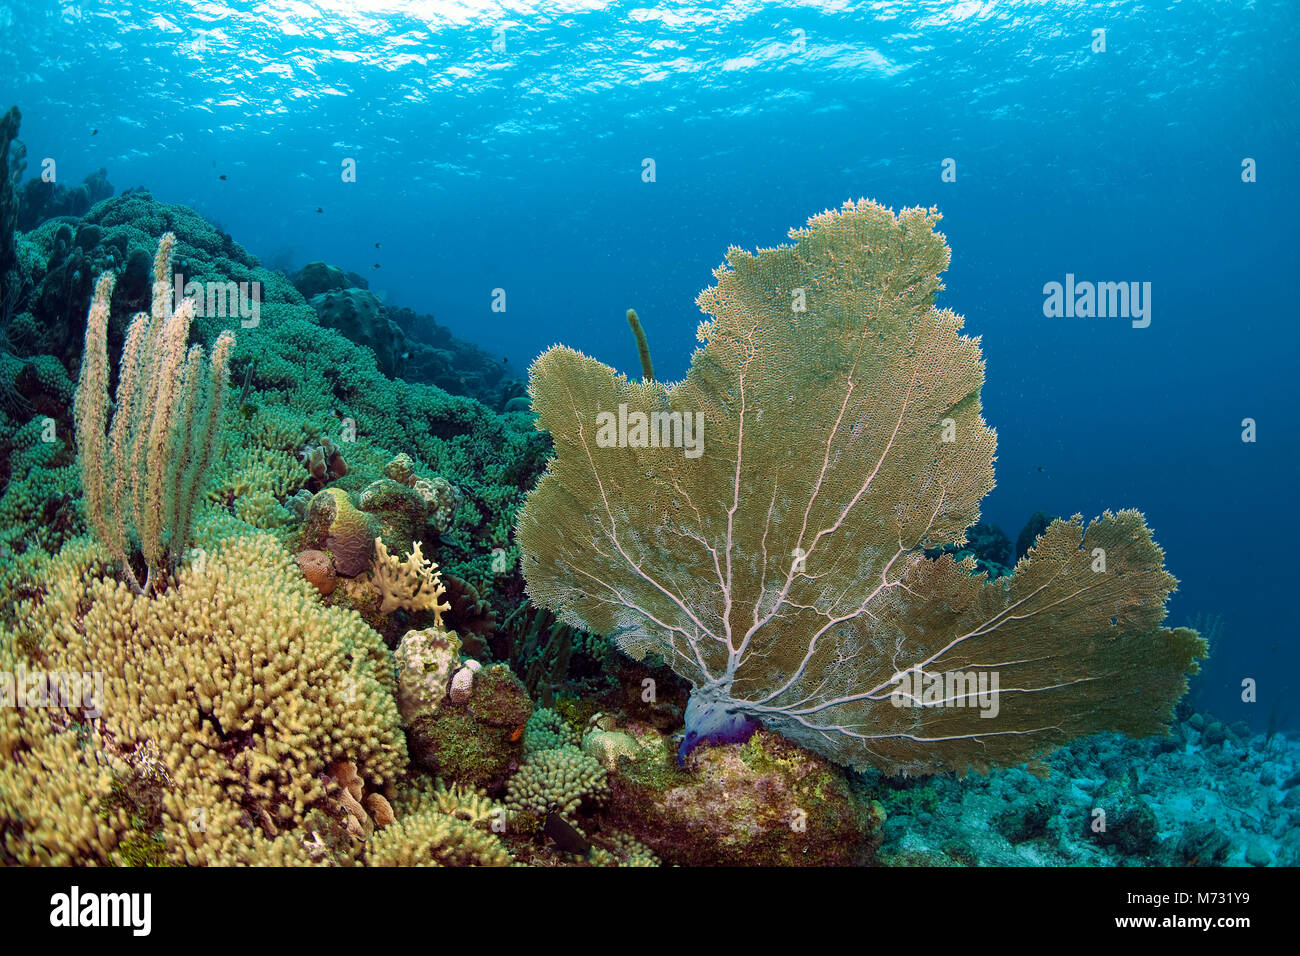 Healthy caribbean coral reef with a giant seafan (Gorgonia ventalina), Curacao, Netherland Antilles, Caribbean, - Stock Image